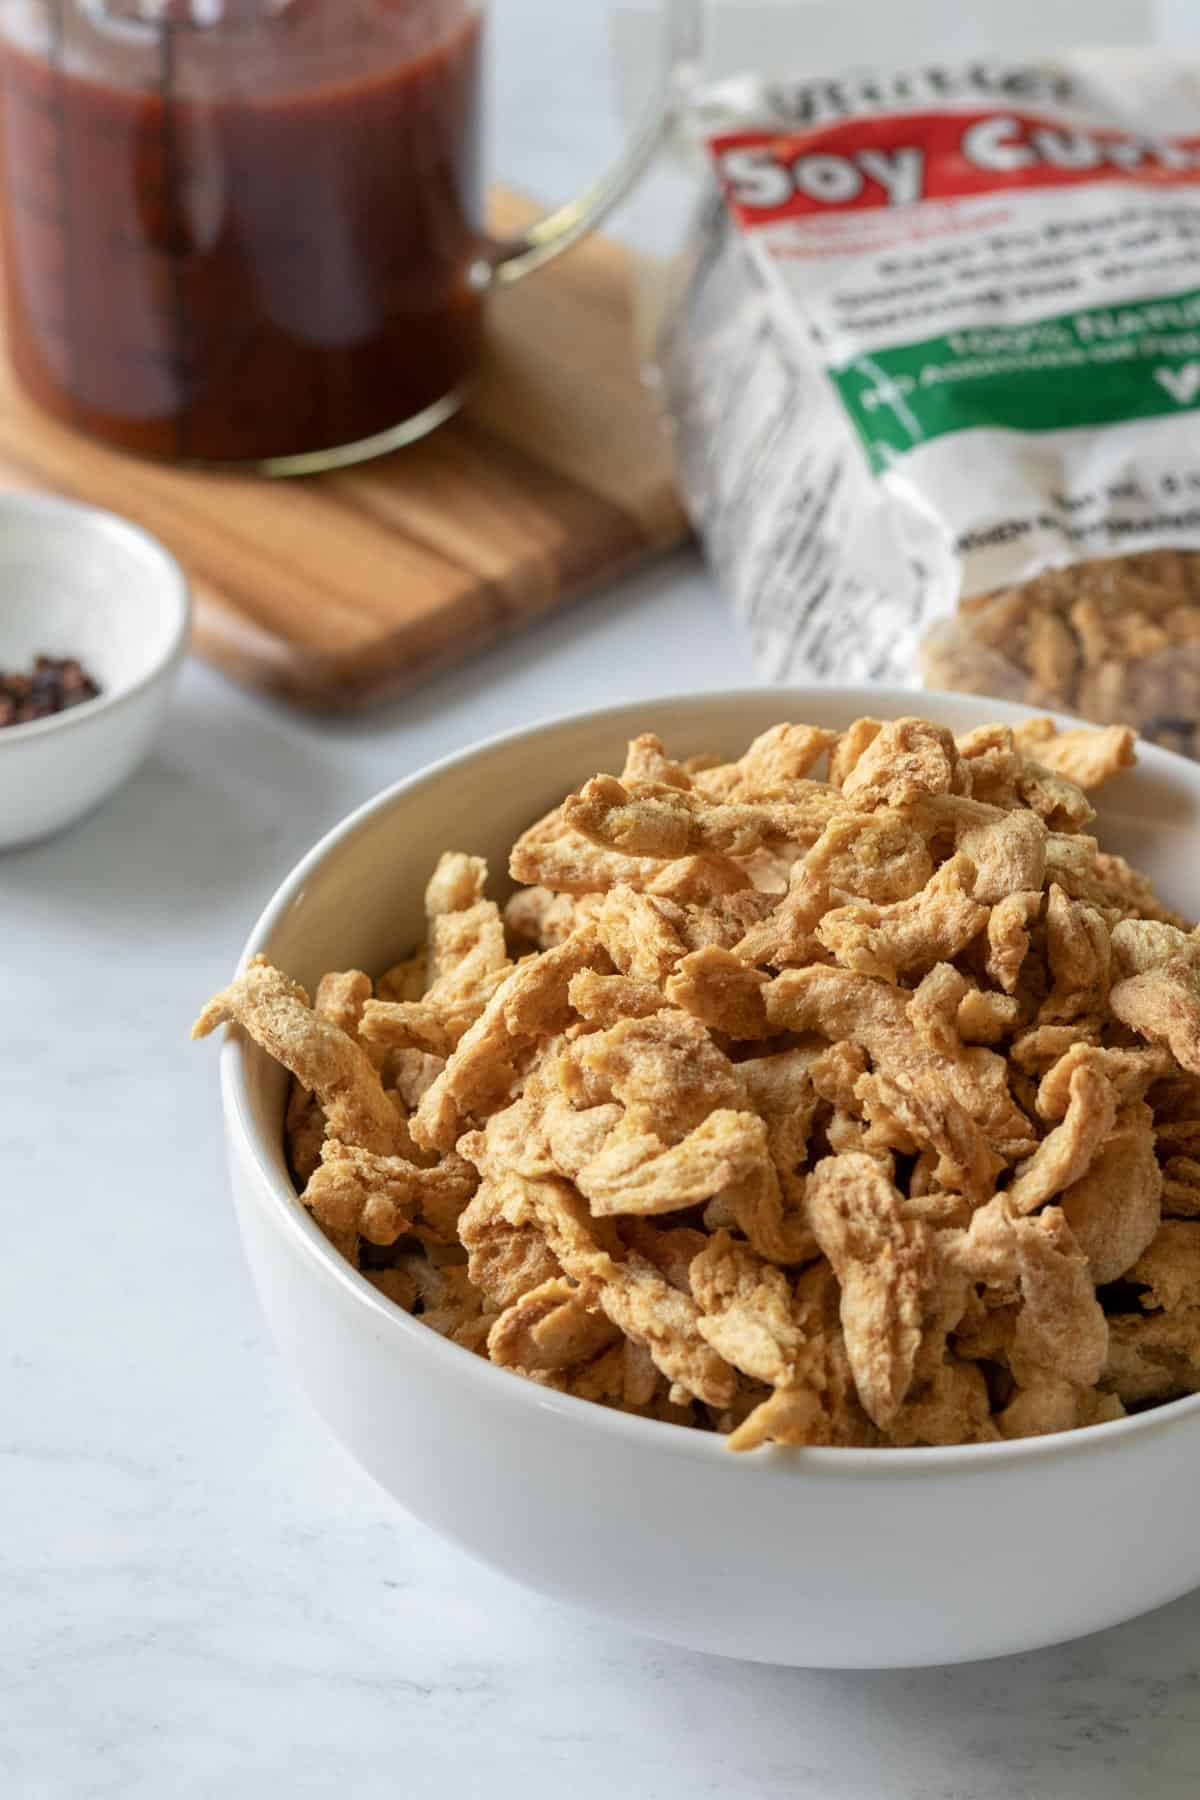 dry soy curls in a small white bowl.